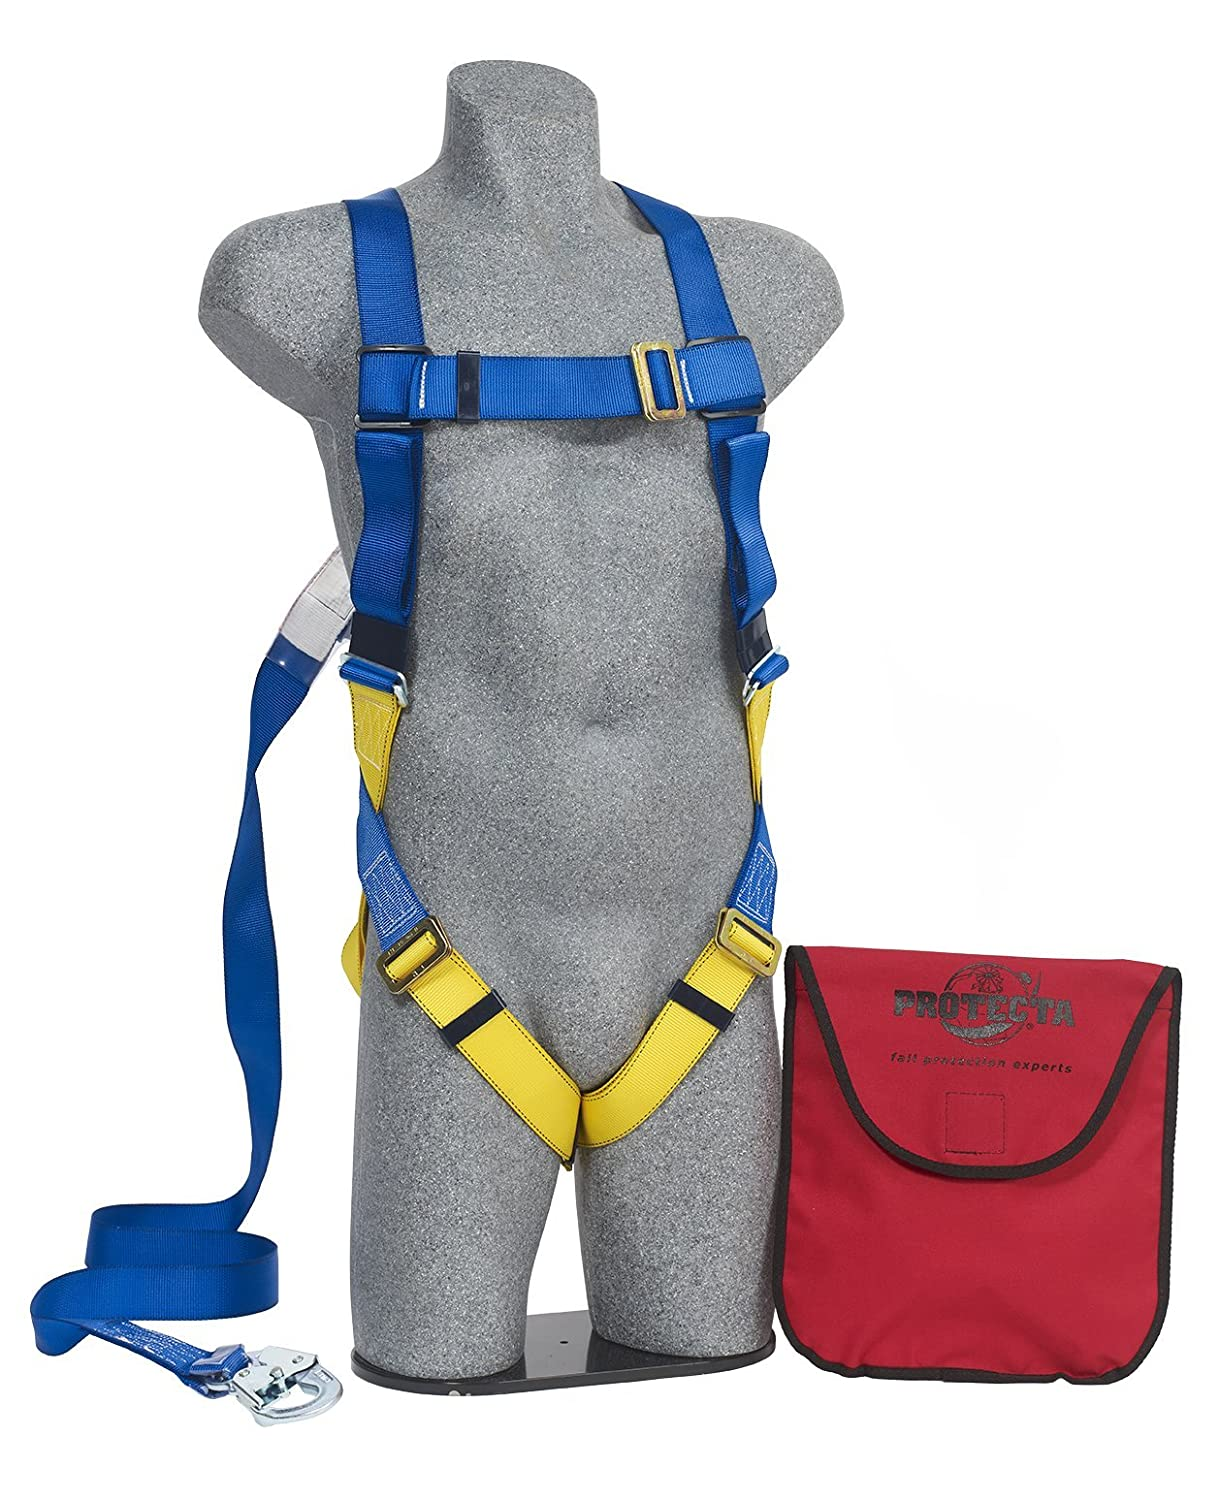 new protecta ab17533 fall protection safety harness. Black Bedroom Furniture Sets. Home Design Ideas